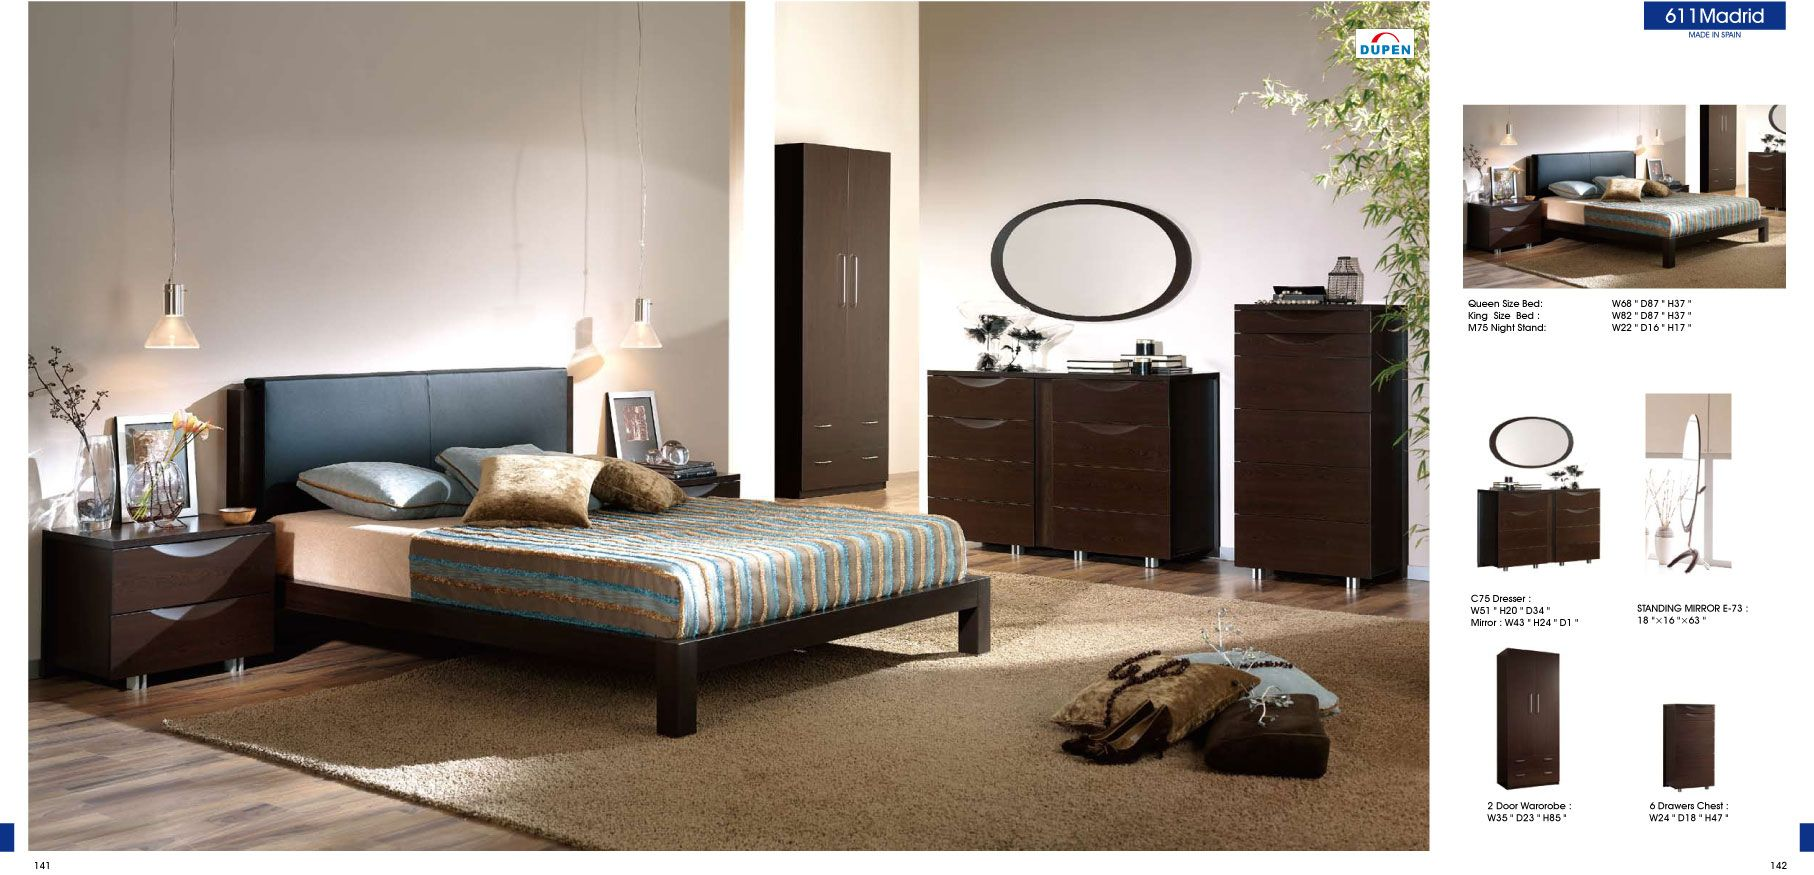 Lovely Bedroom Furniture Modern Bedrooms 611 Madrid, M75, C75